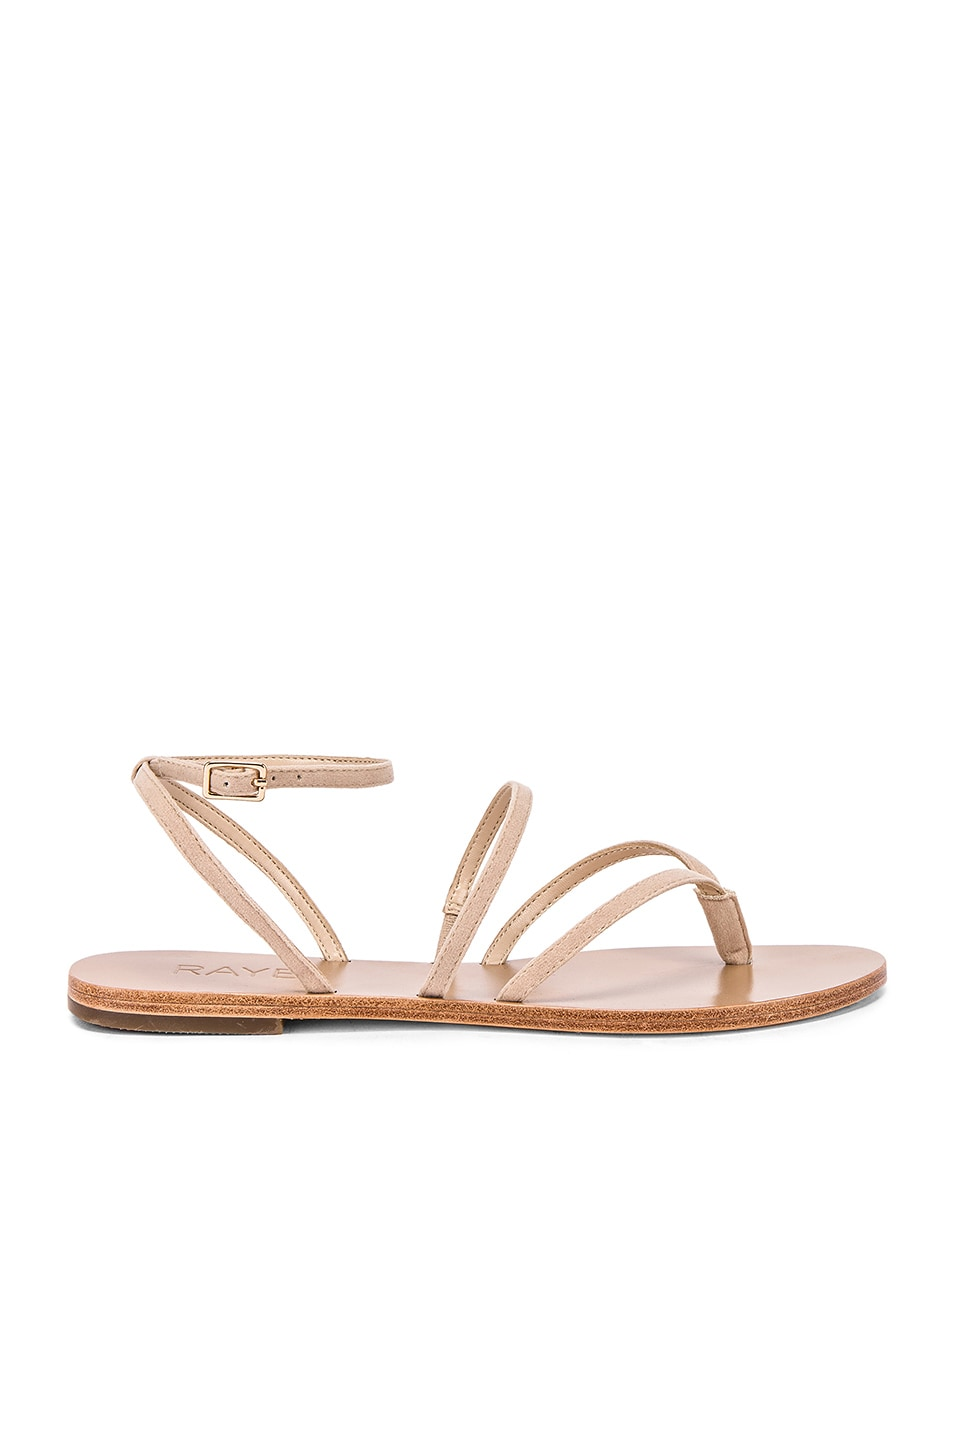 RAYE Void Sandal in Nude